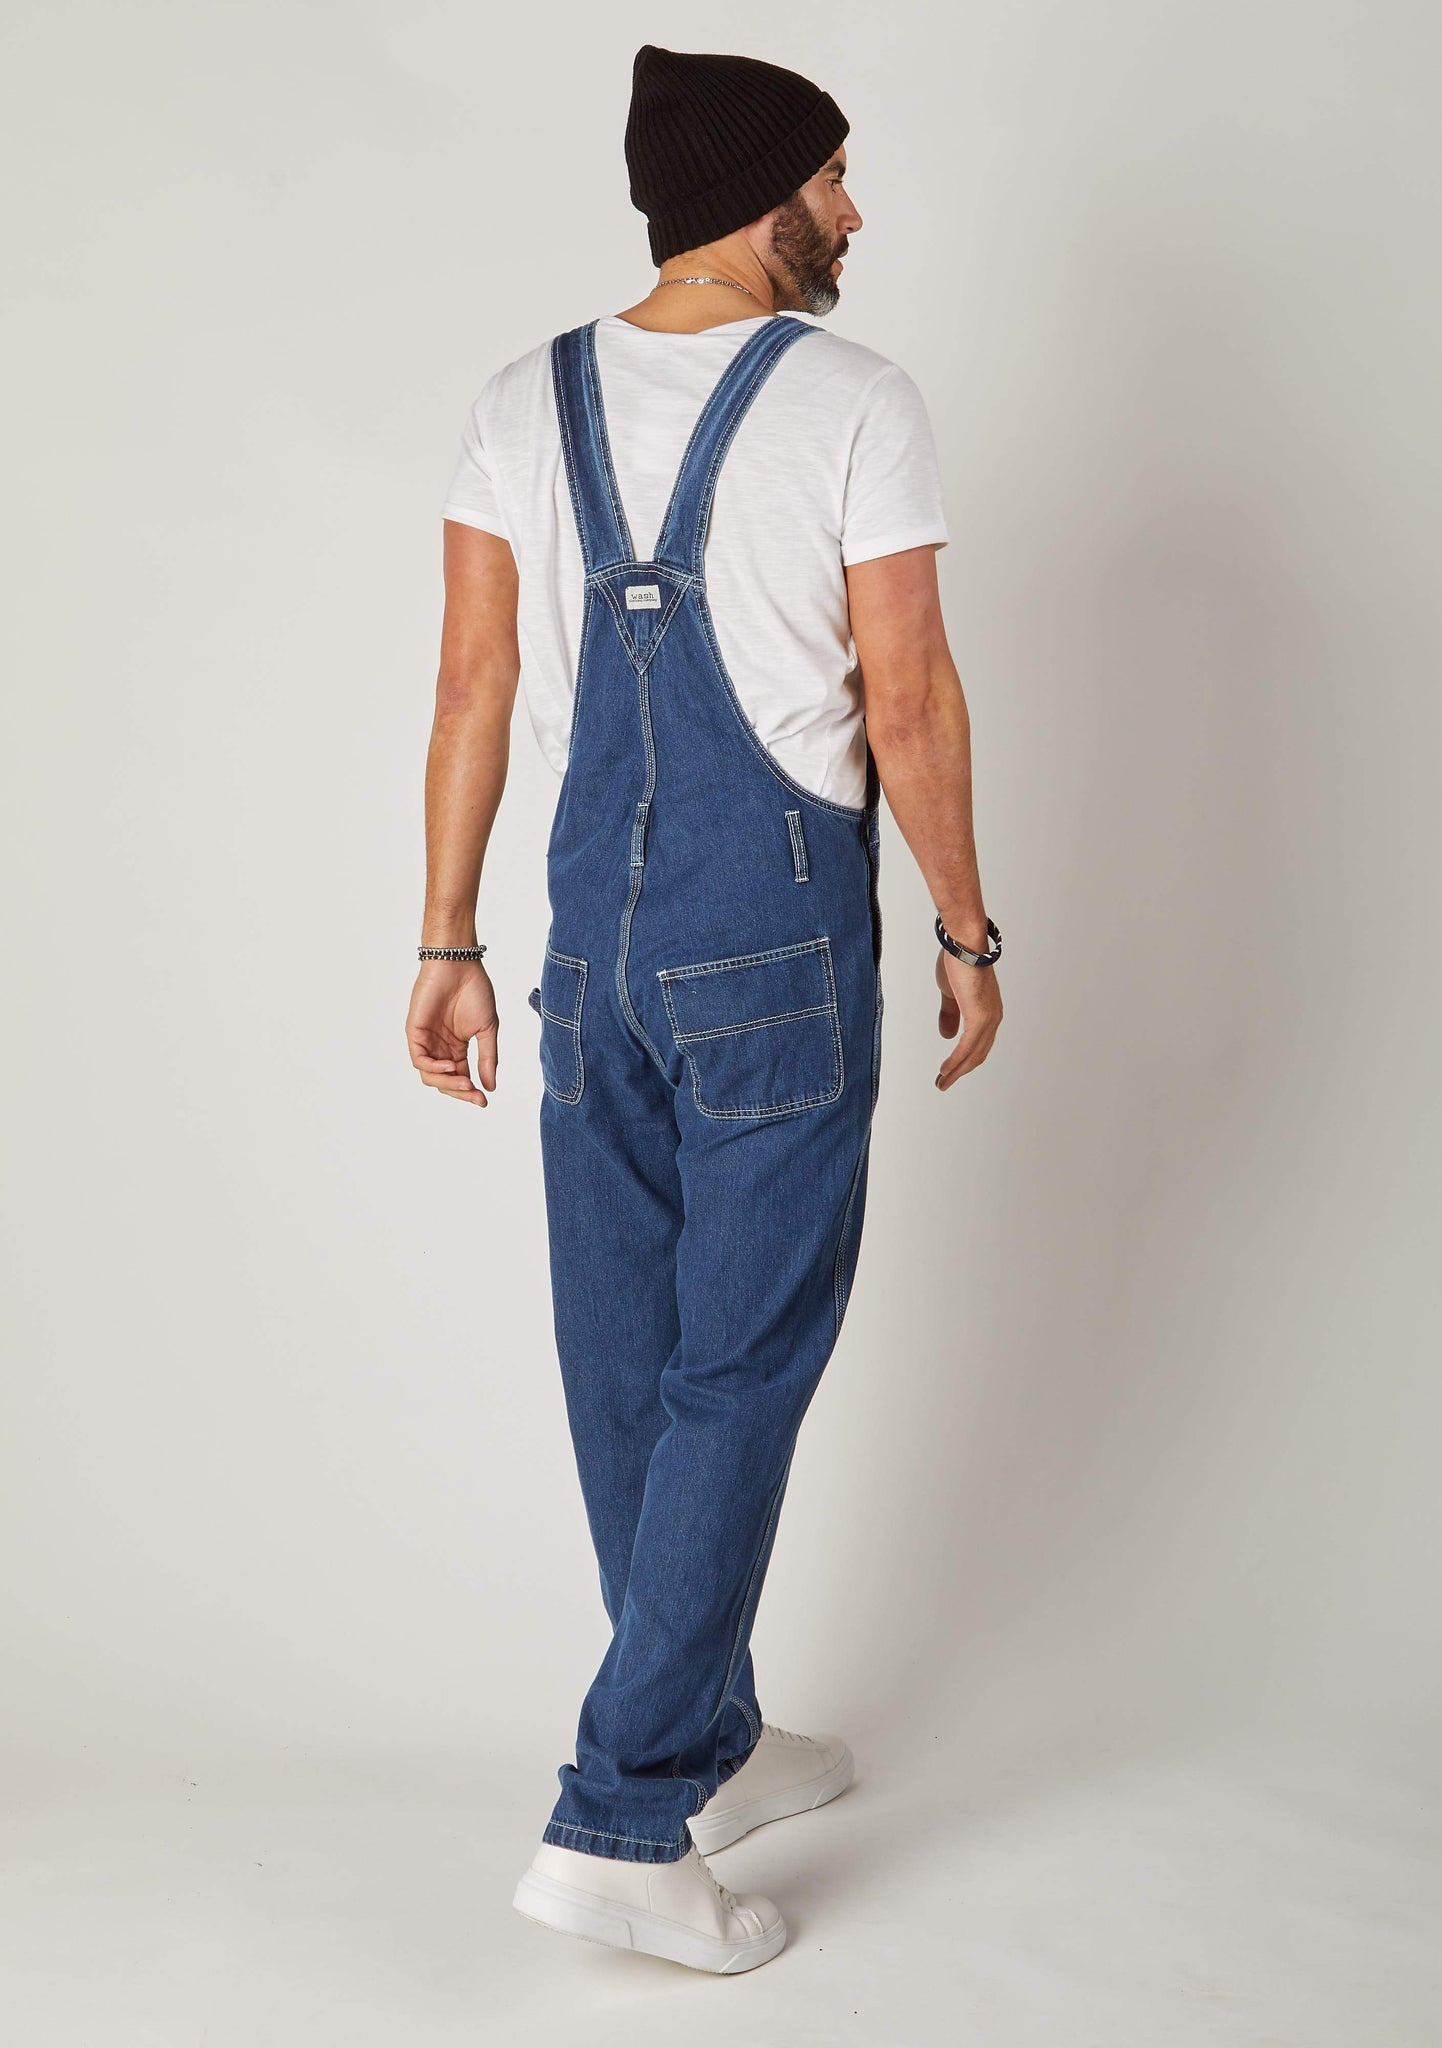 Full rear pose, angled to his right, wearing contemporary 'Maddox' stonewash 10oz denim dungaree overalls with view of back pockets and straps.